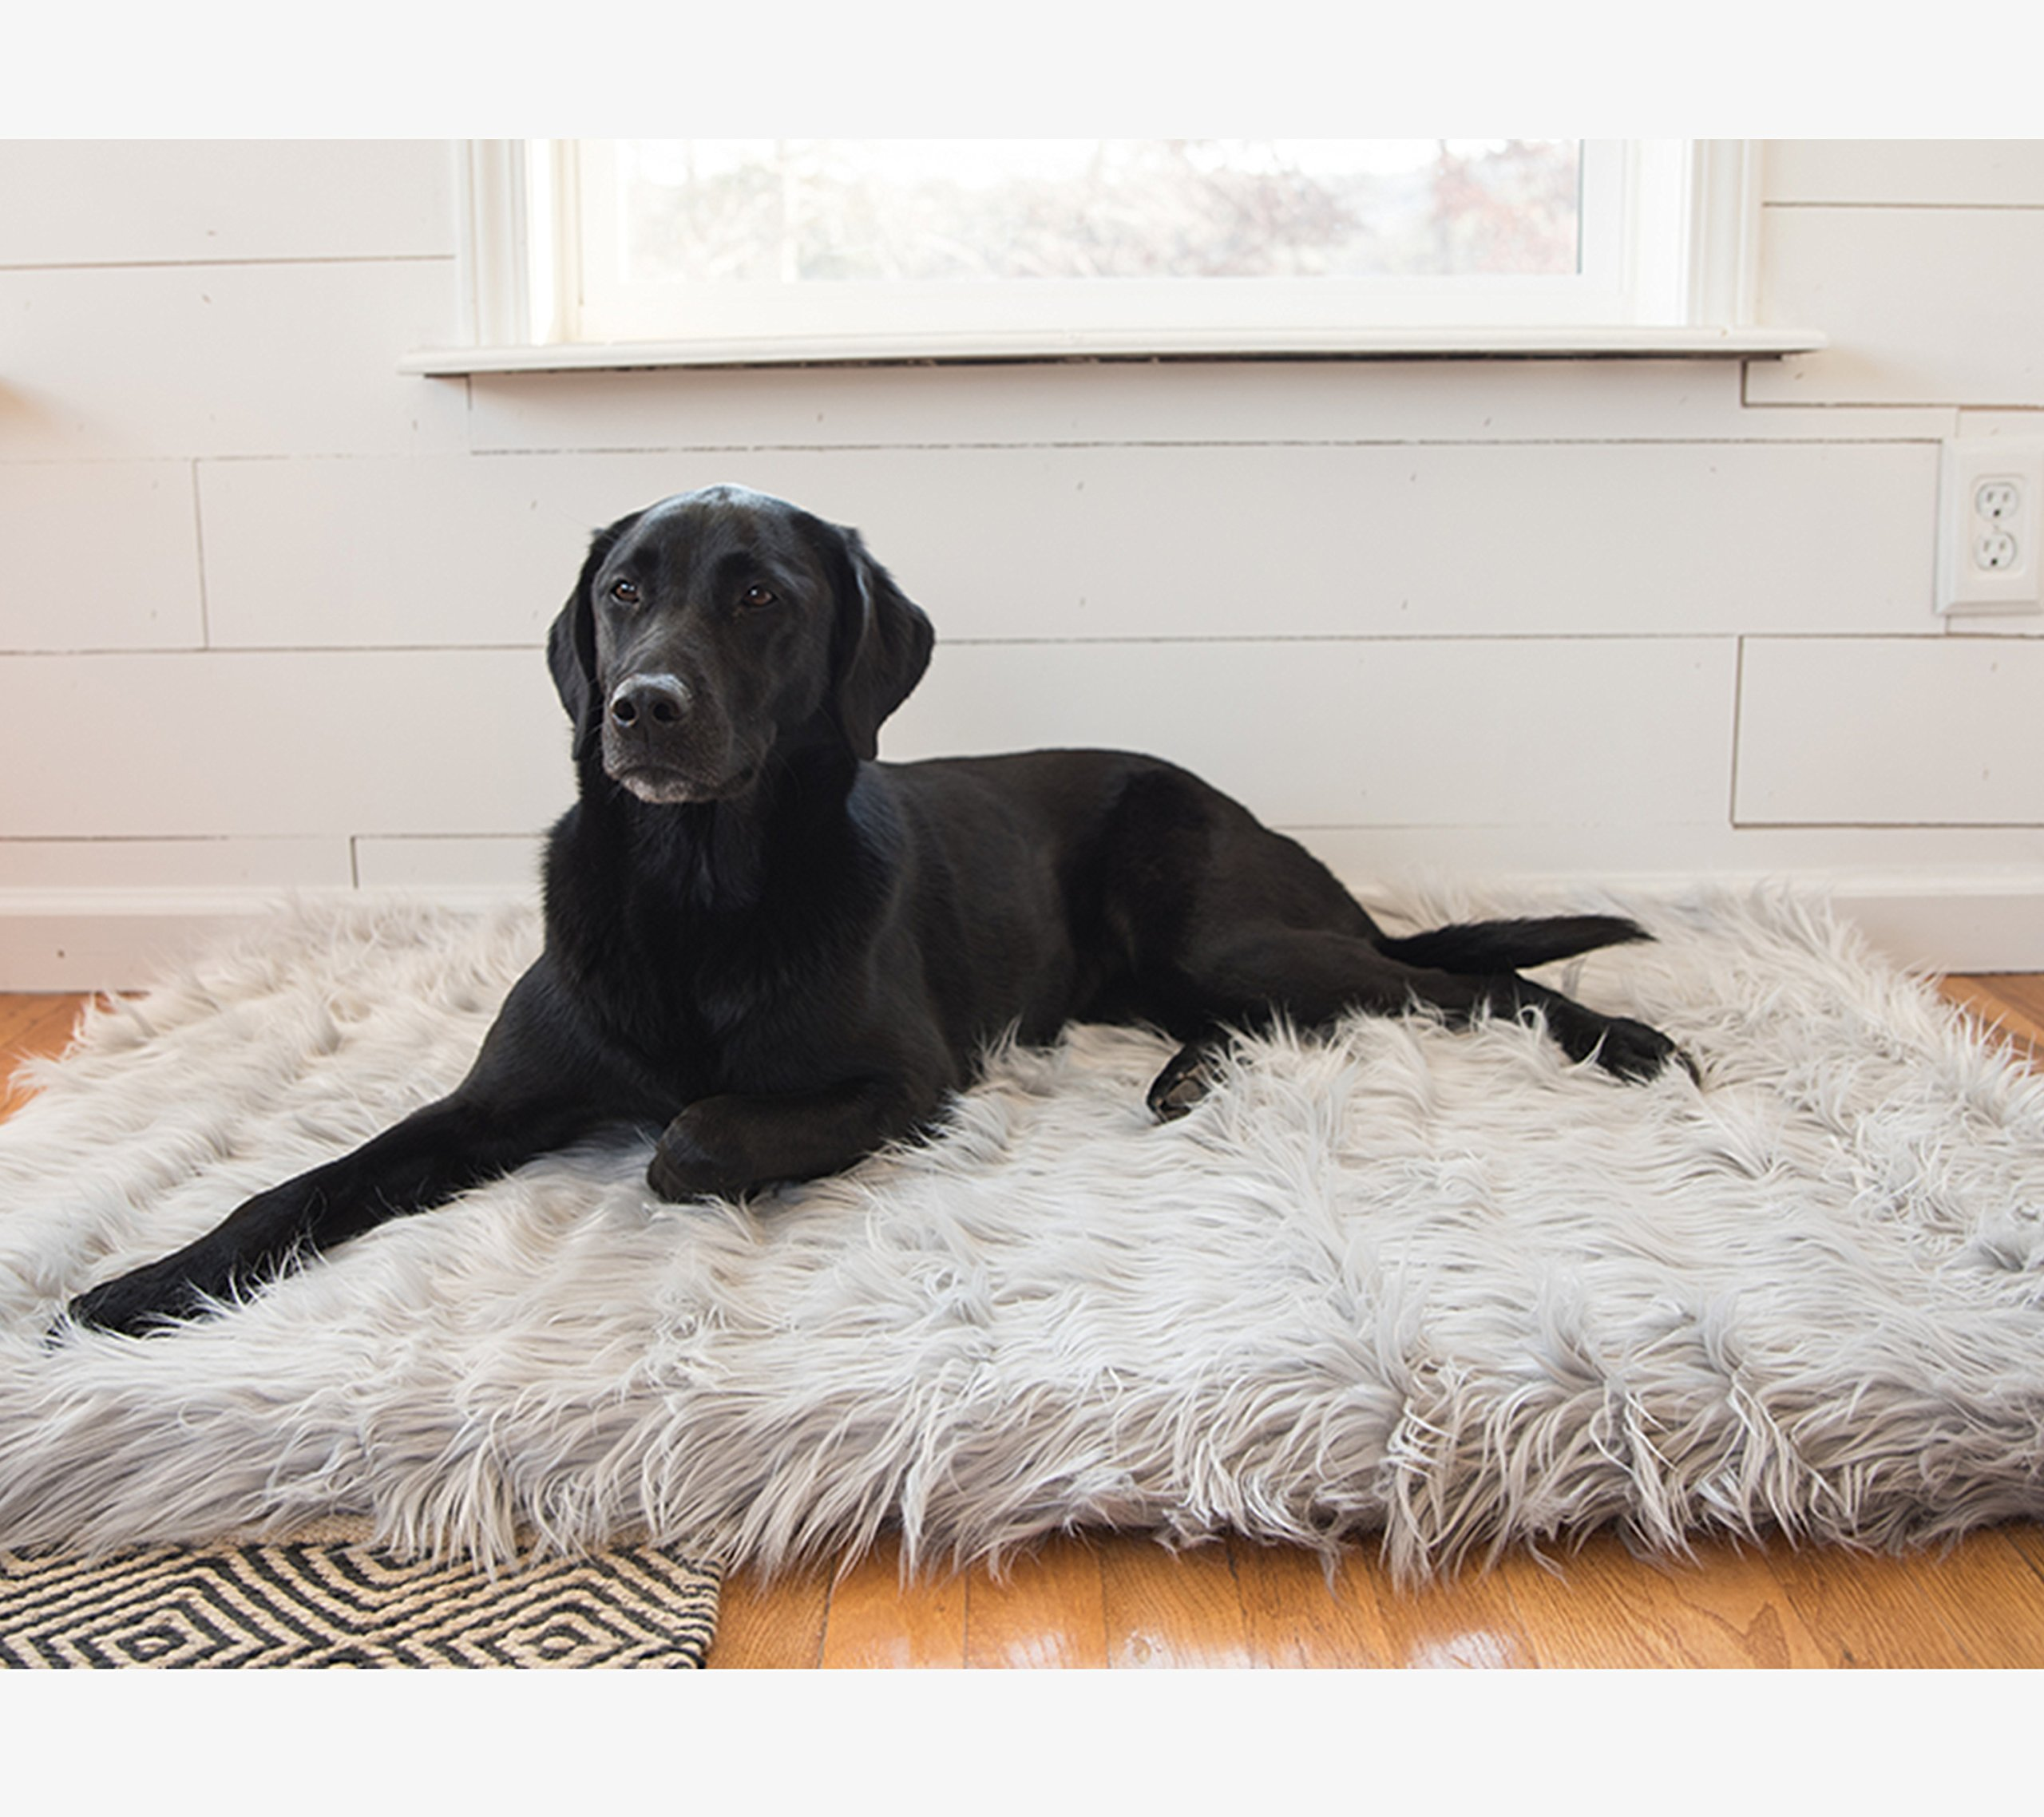 PupRug Faux Fur Memory Foam Orthopedic Dog Bed (Giant - 60'' L x 35'' W, Gray Rectangle) by Treat A Dog (Image #1)